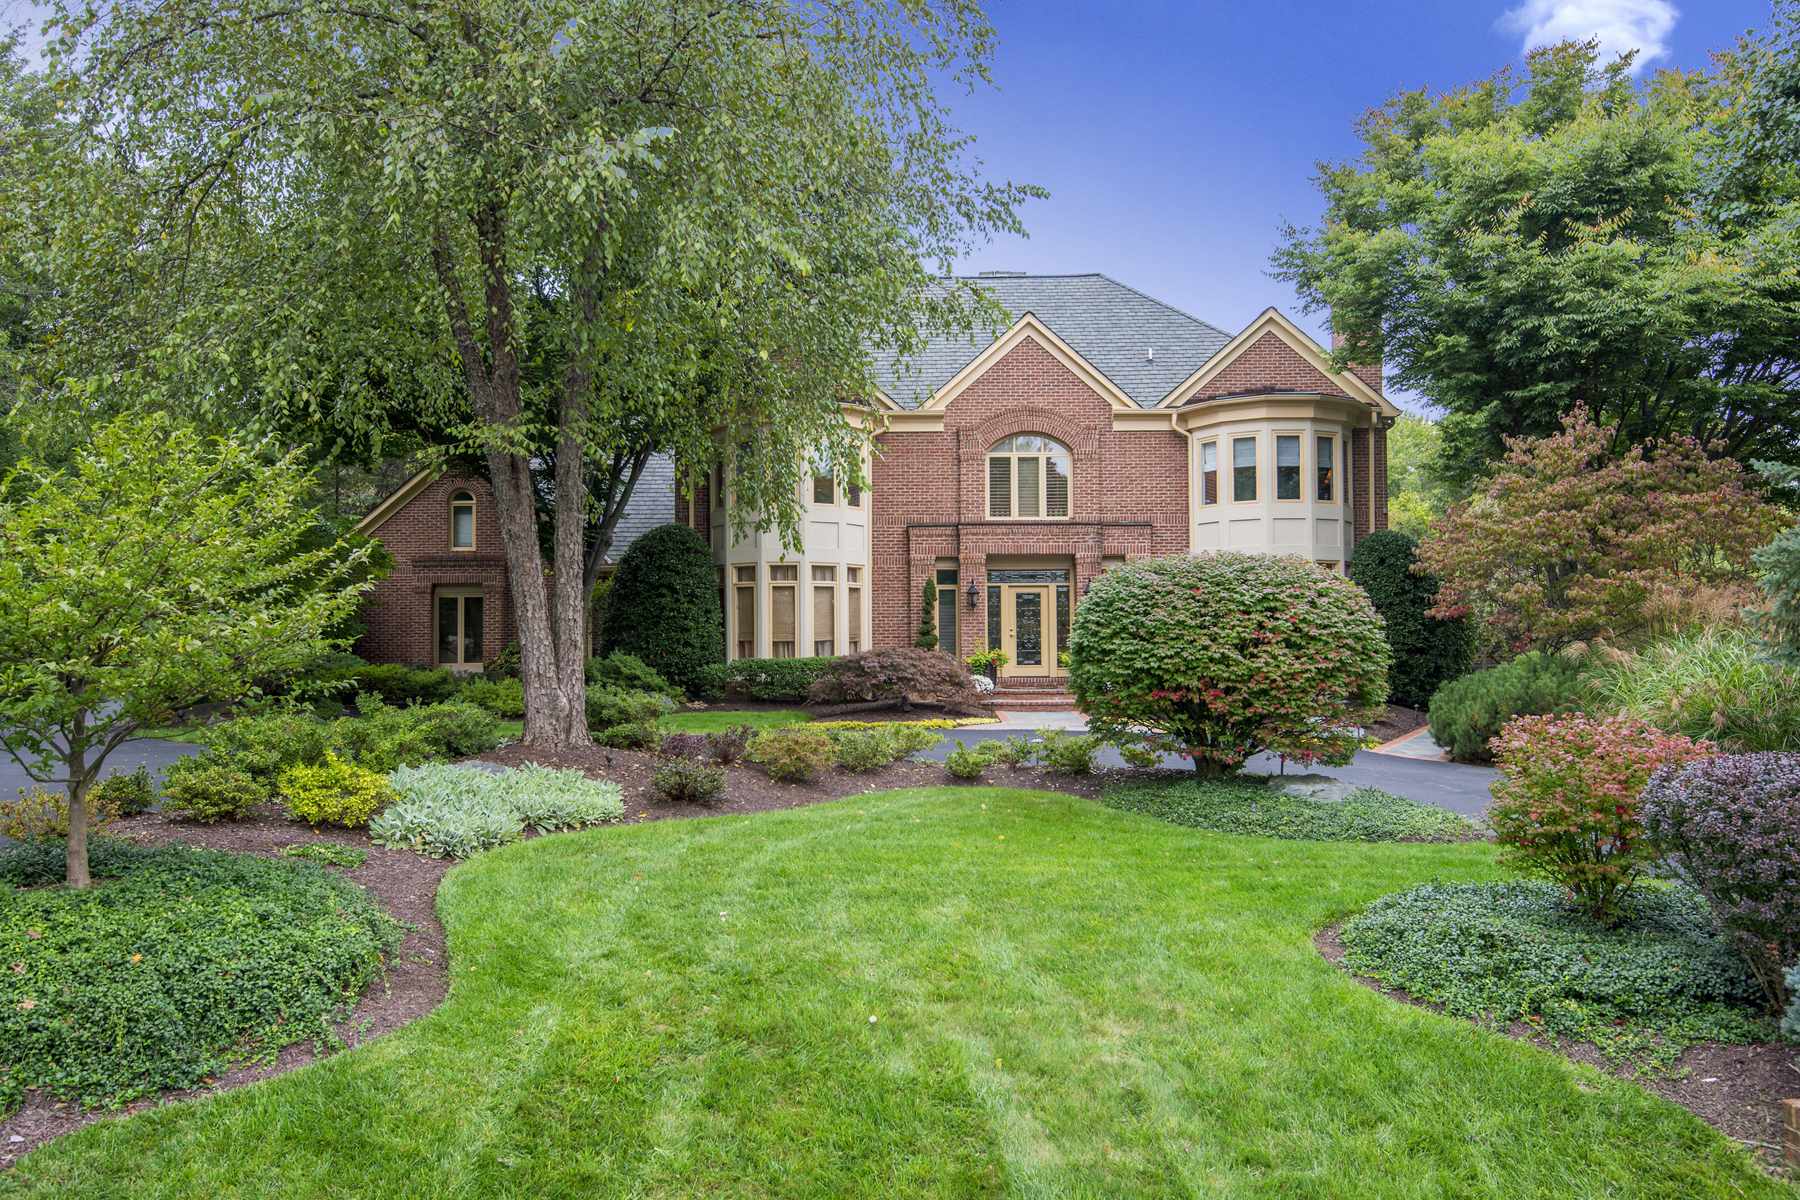 Single Family Home for Sale at 9237 Cambridge Manor Court, Potomac 9237 Cambridge Manor Ct Potomac, Maryland, 20854 United States